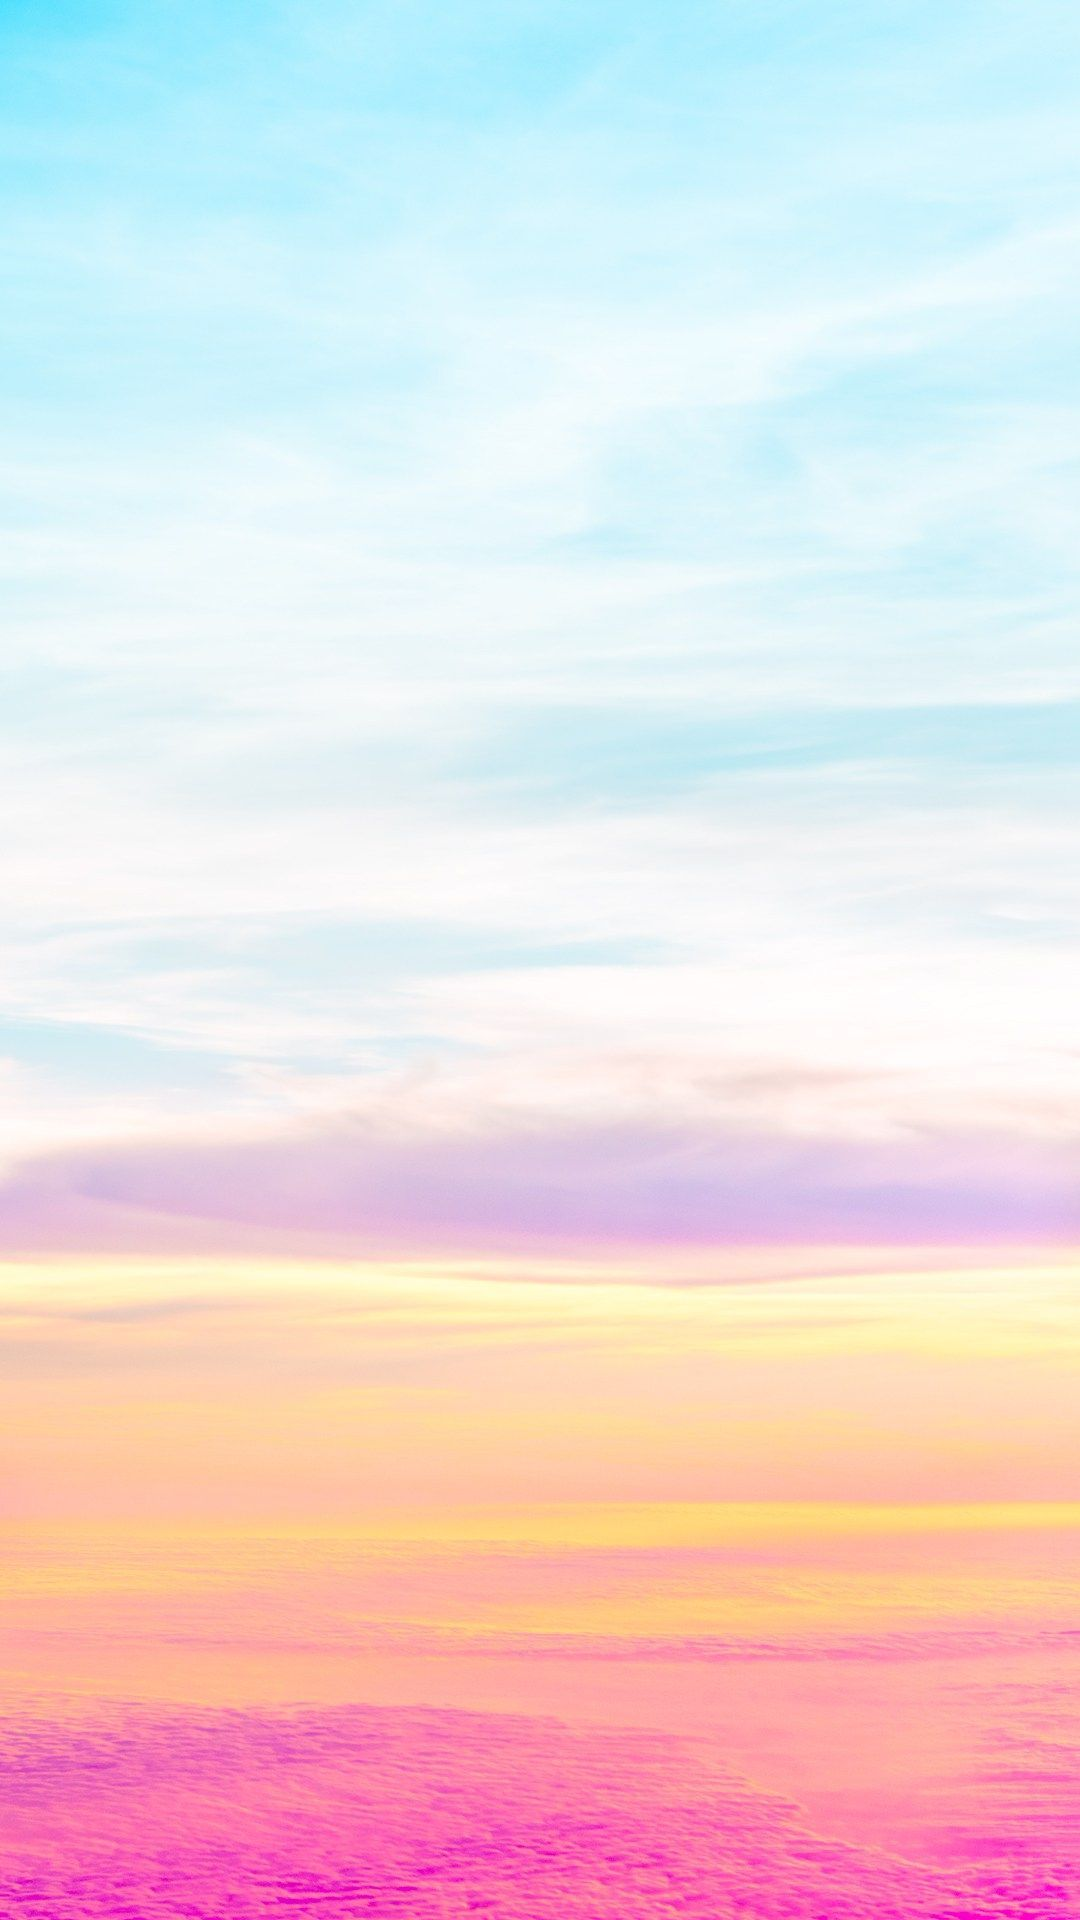 Pastel Iphone Wallpapers Top Free Pastel Iphone